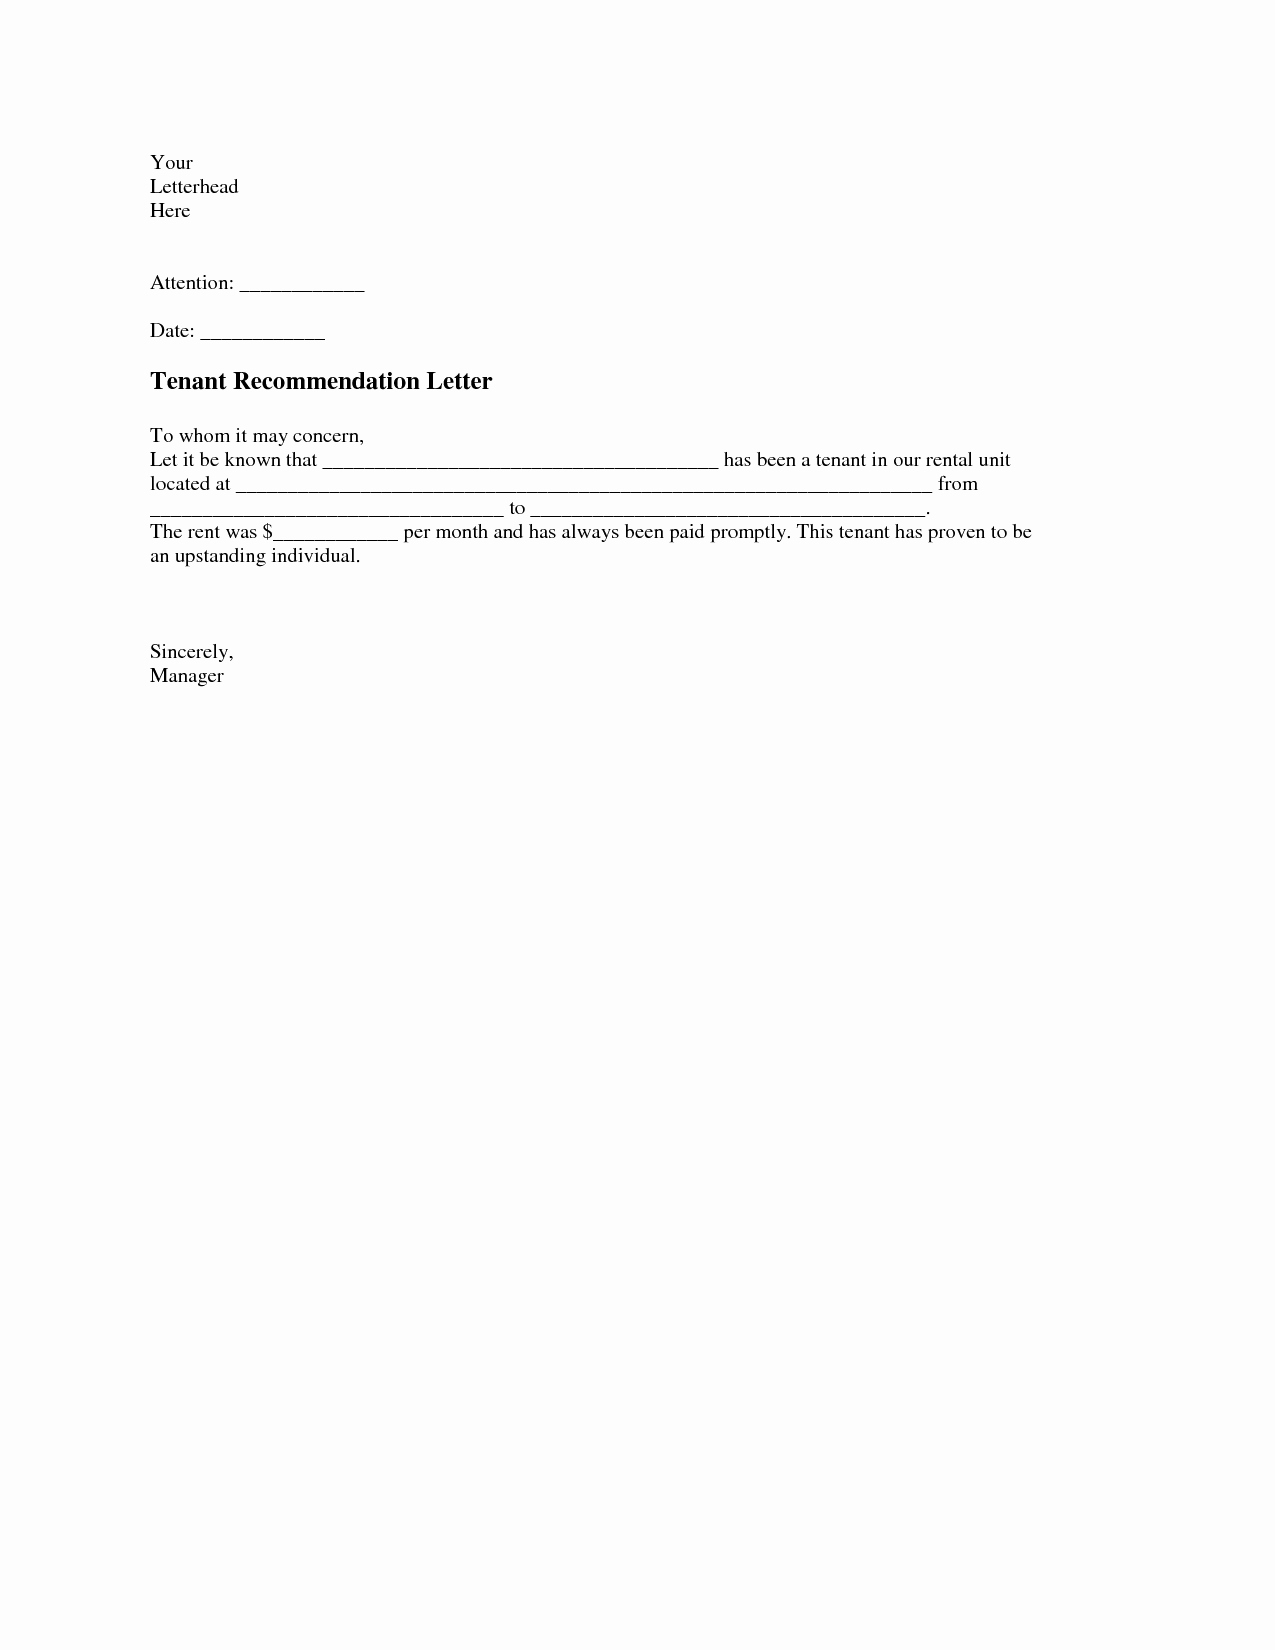 Reference Letter for Renters Beautiful Tenant Re Mendation Letter A Tenant Re Mendation